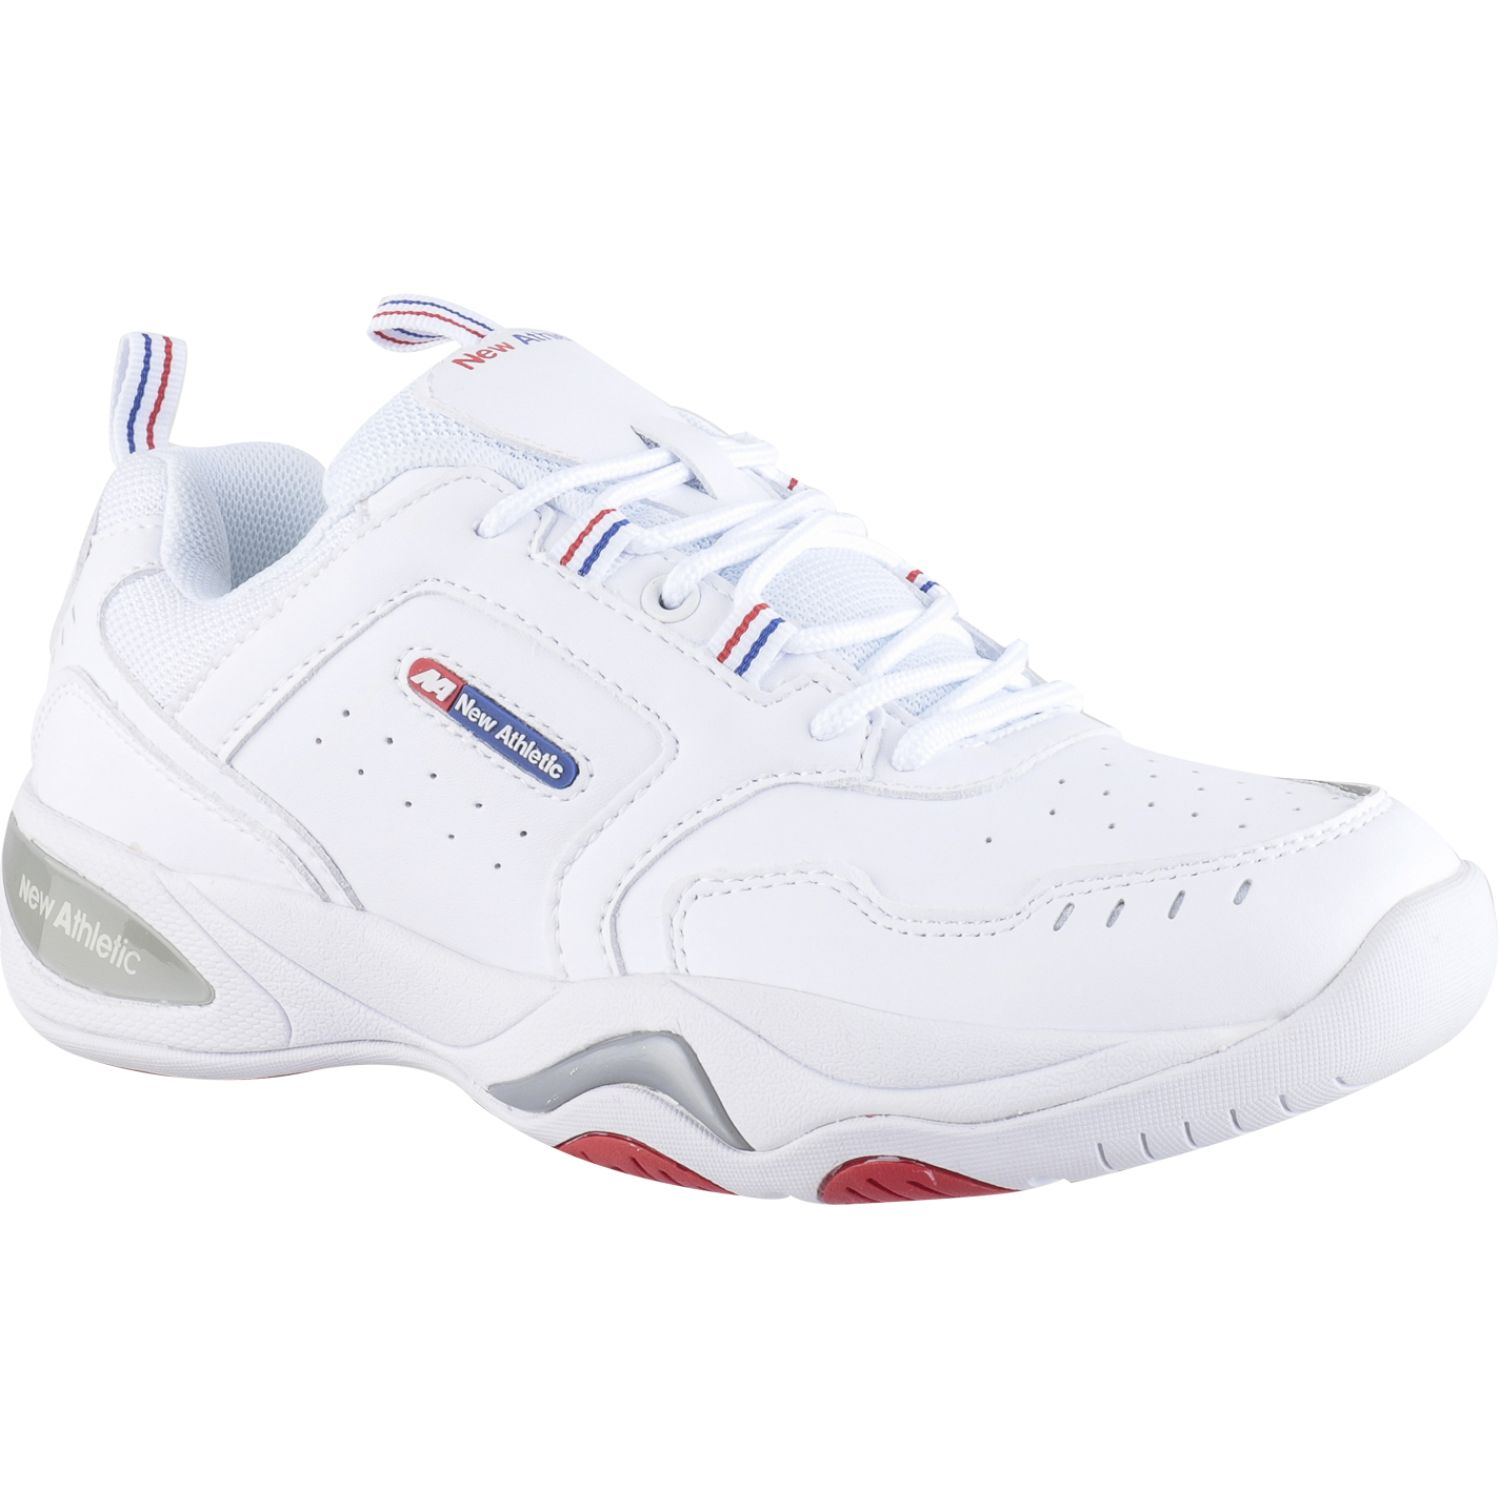 NEW ATHLETIC Row Blanco Zapatillas de moda